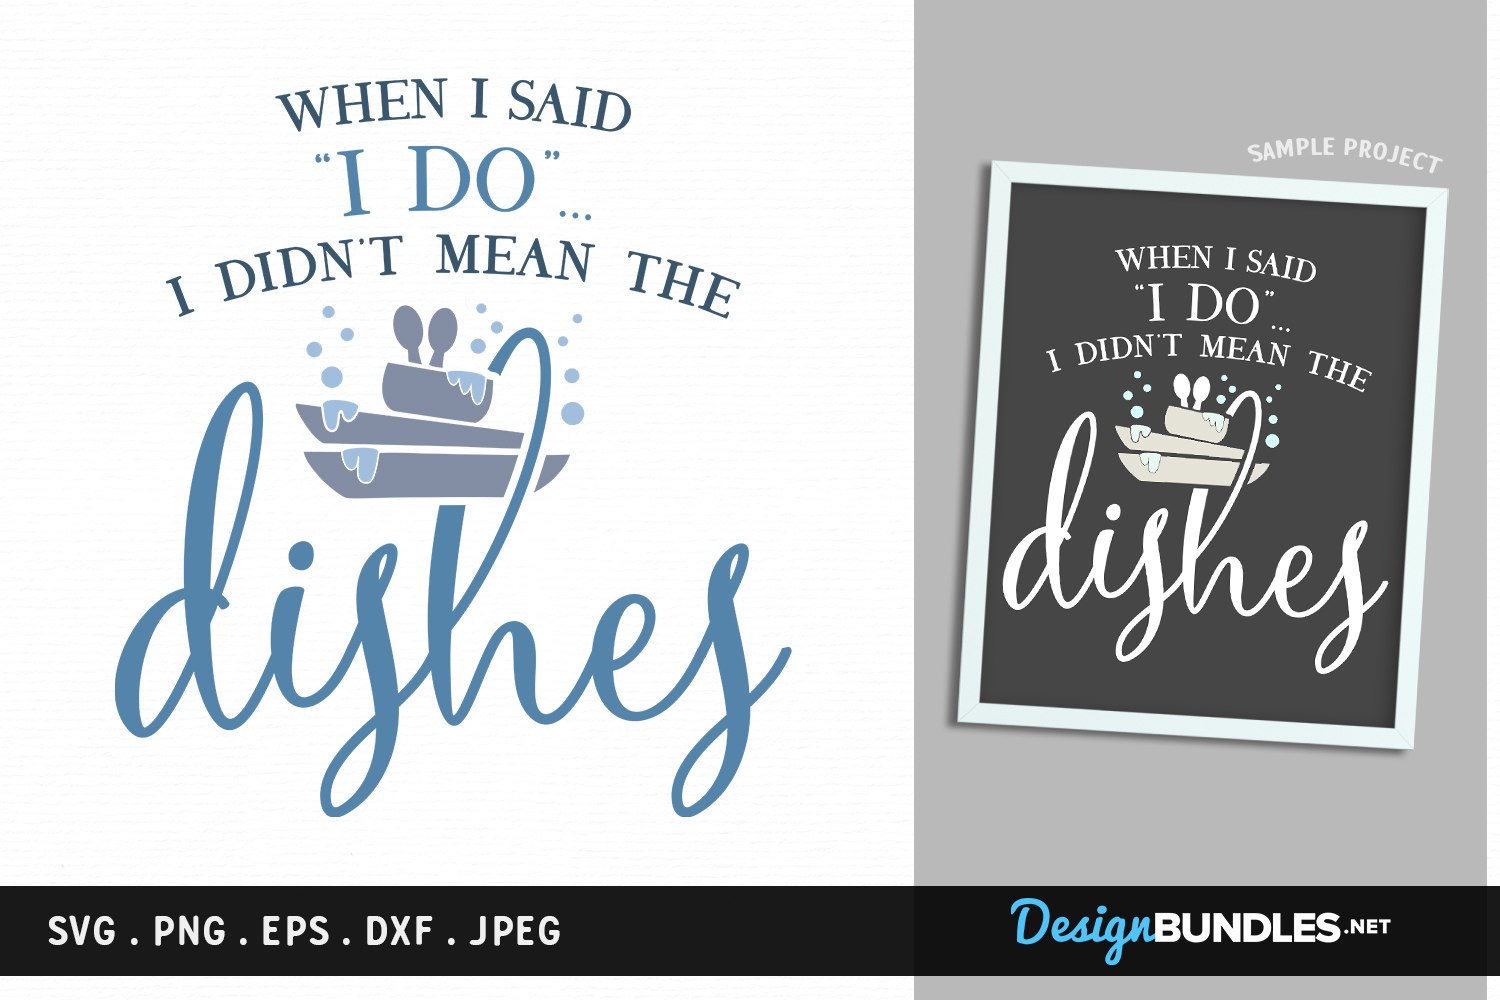 When I said I do, I didn't mean the Dishes - svg file example image 1